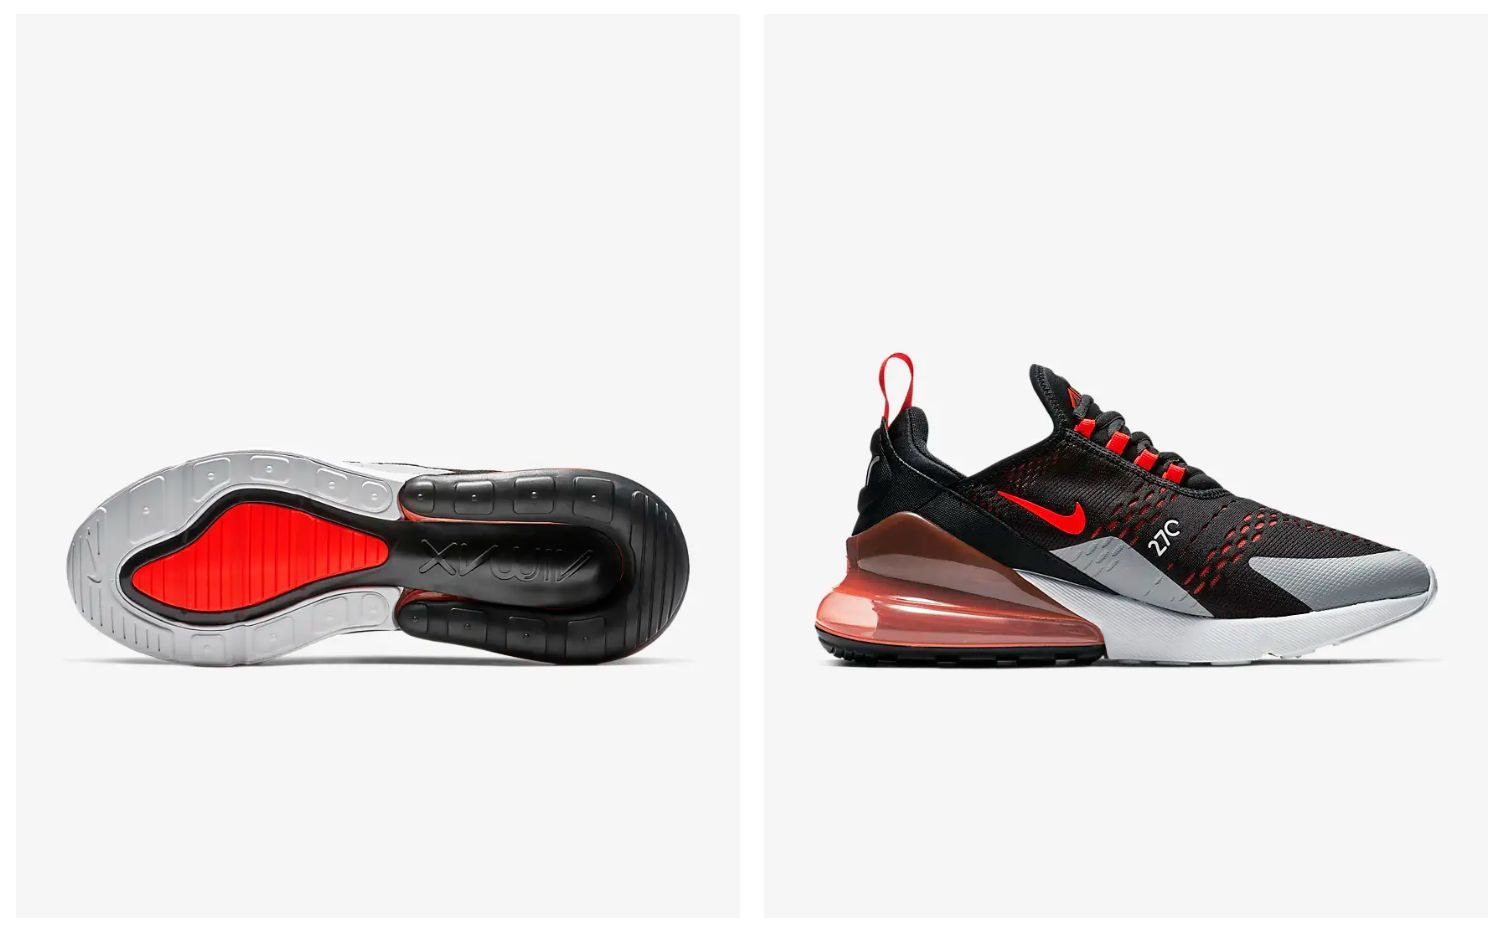 Muslims demand Nike pull Air Max 270 off shelves over